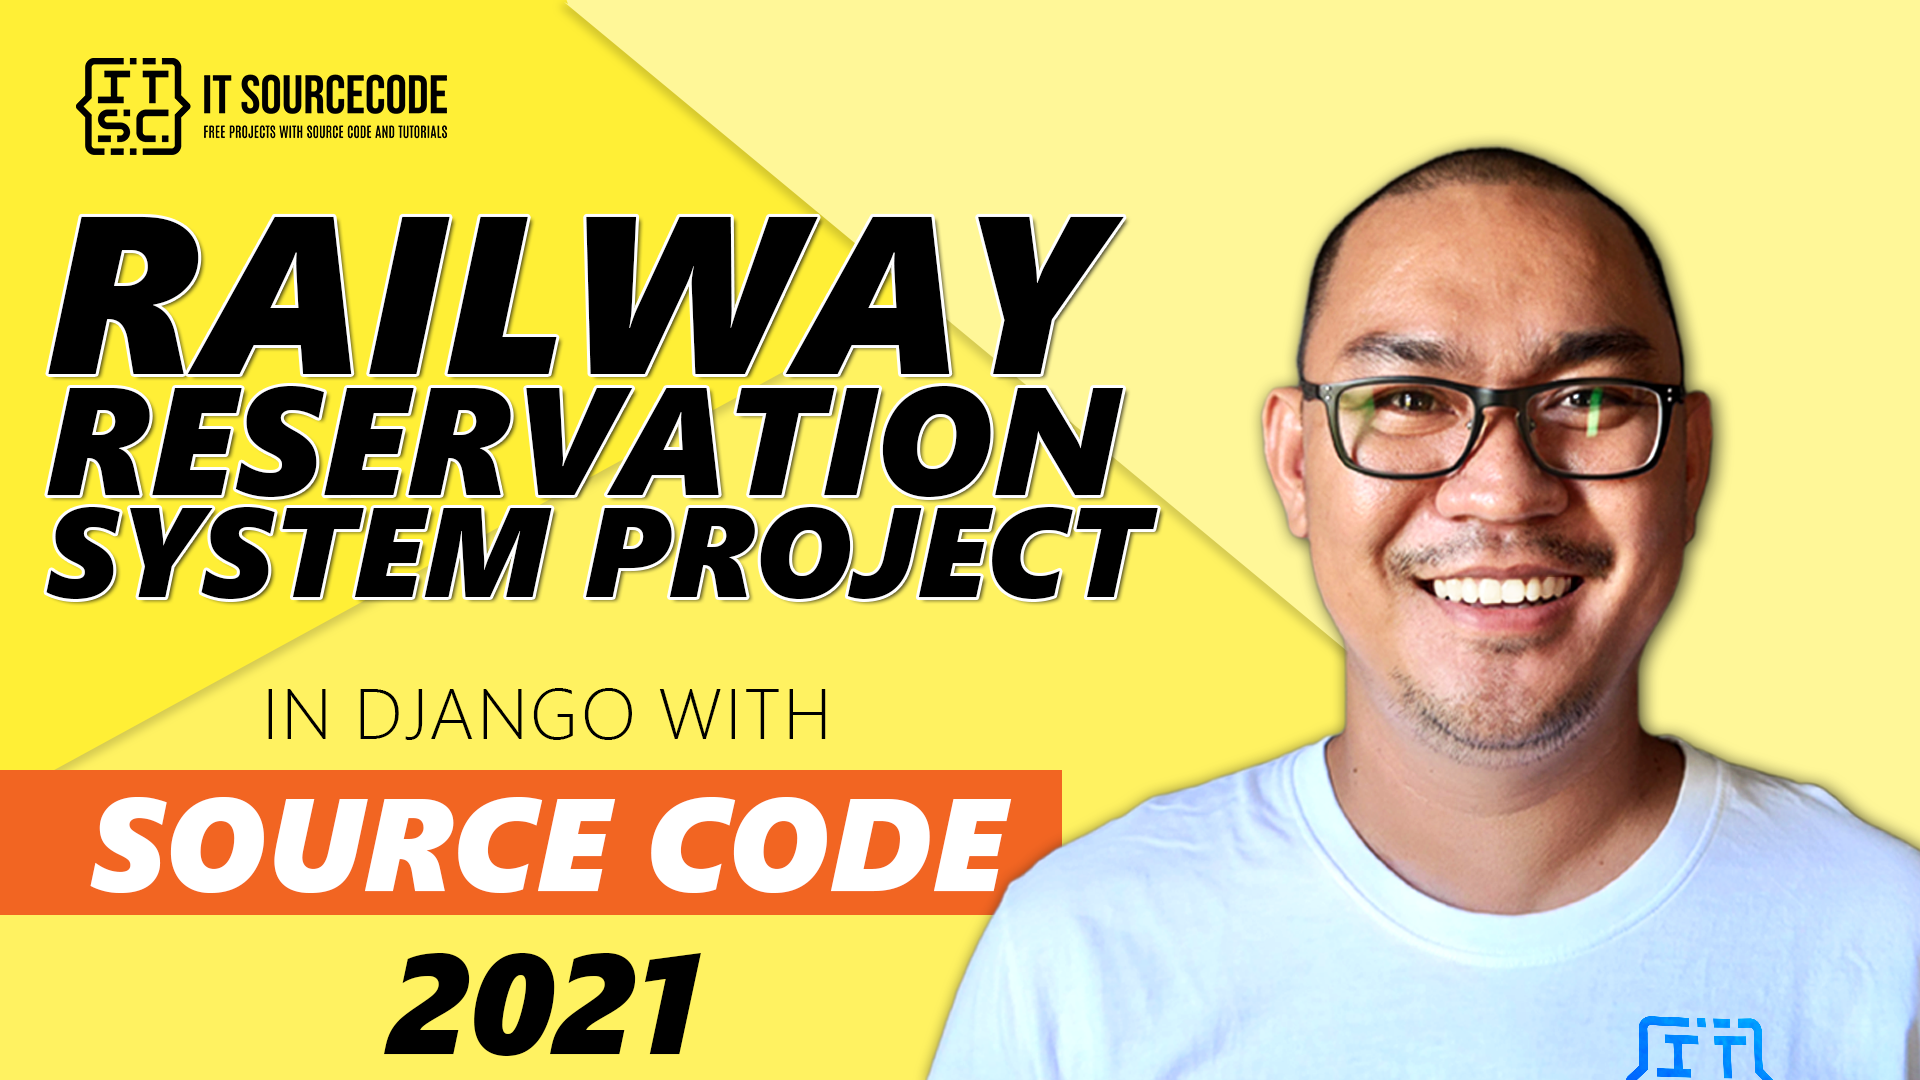 Railway Reservation System in Django with Source Code 2021